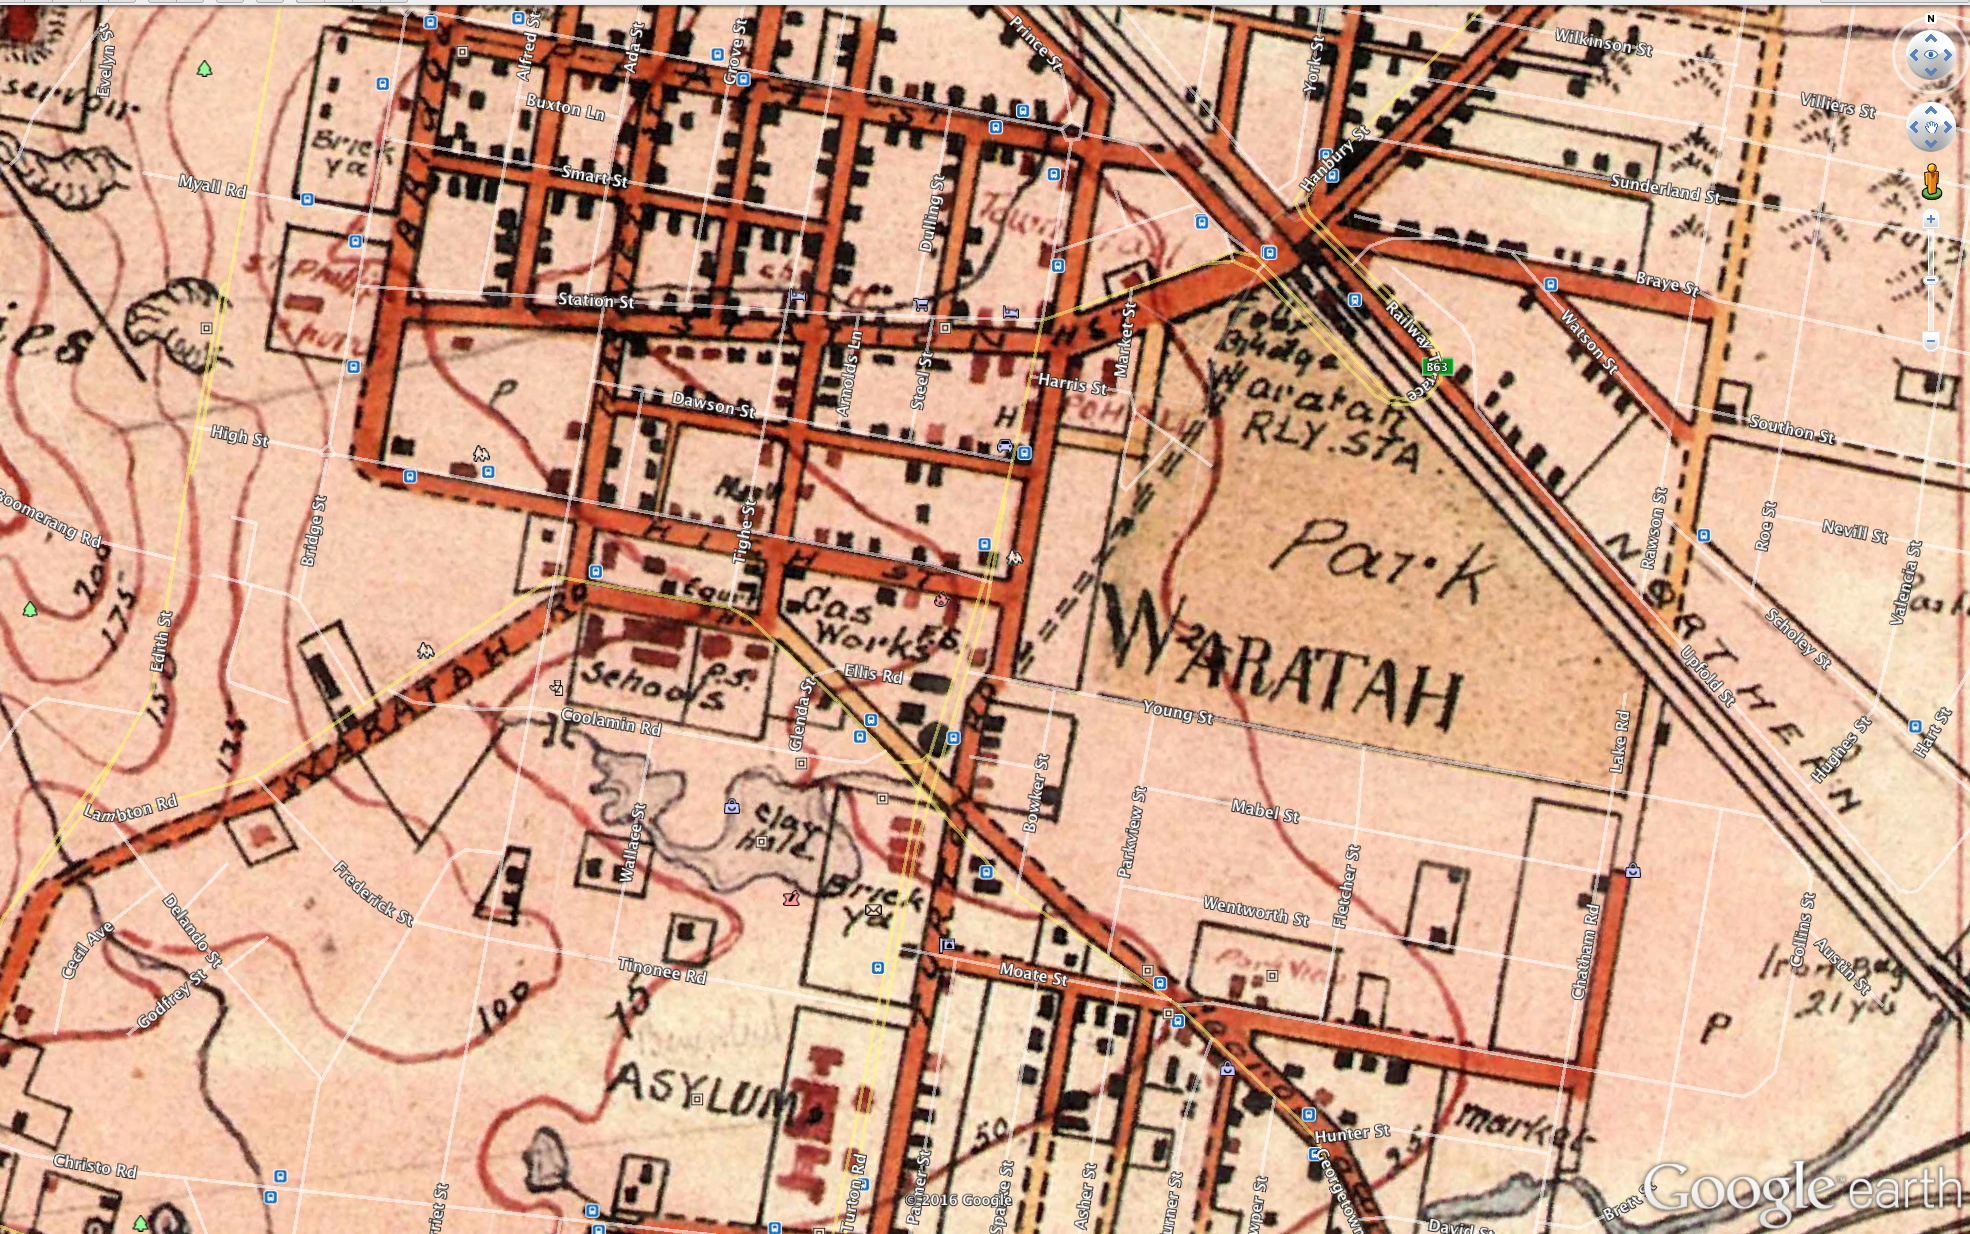 Waratah portion of the 1910 Newcastle plan showing St Phillips at the end of Station Street Waratah (click for a larger version)